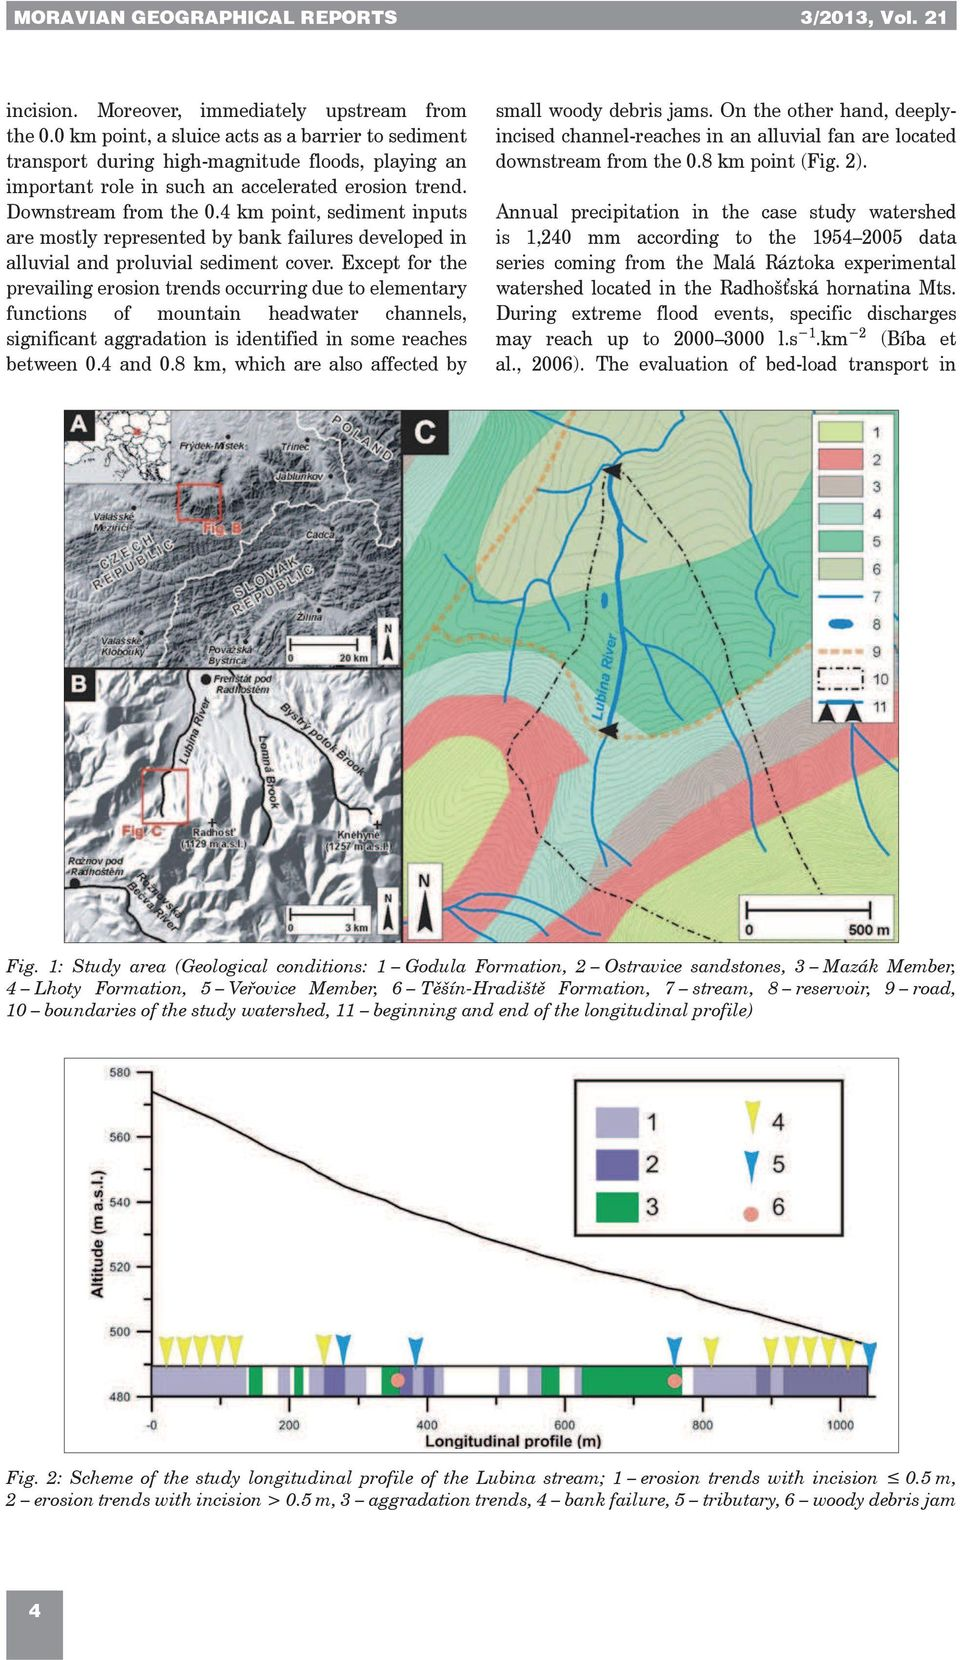 4 km point, sediment inputs are mostly represented by bank failures developed in alluvial and proluvial sediment cover.